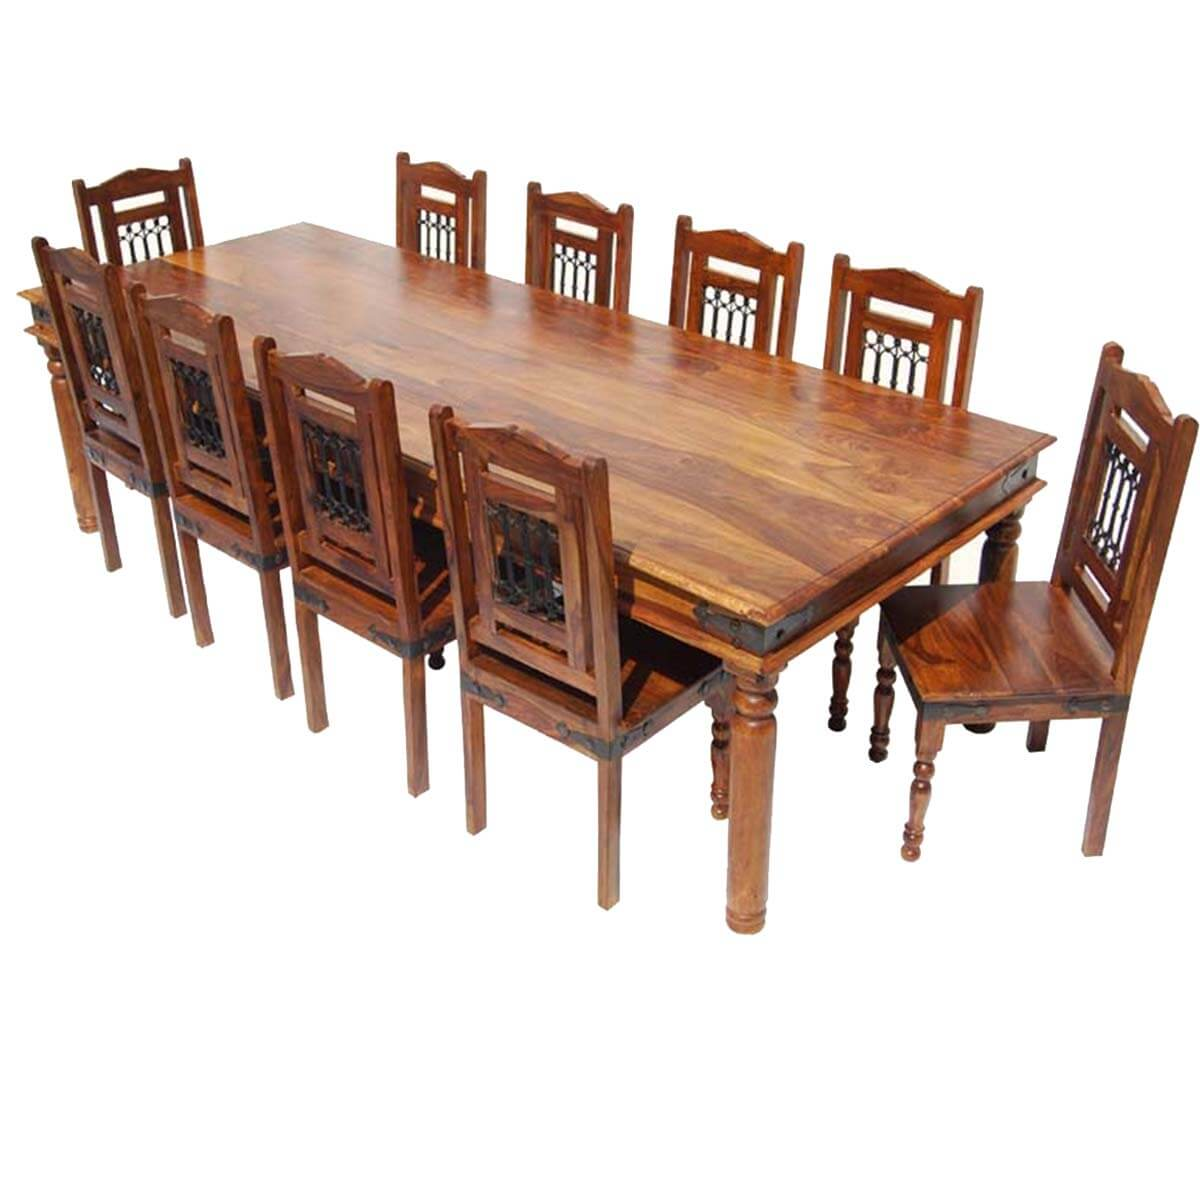 Solid wood large rustic dining room table chair sideboard set for Large dining room table